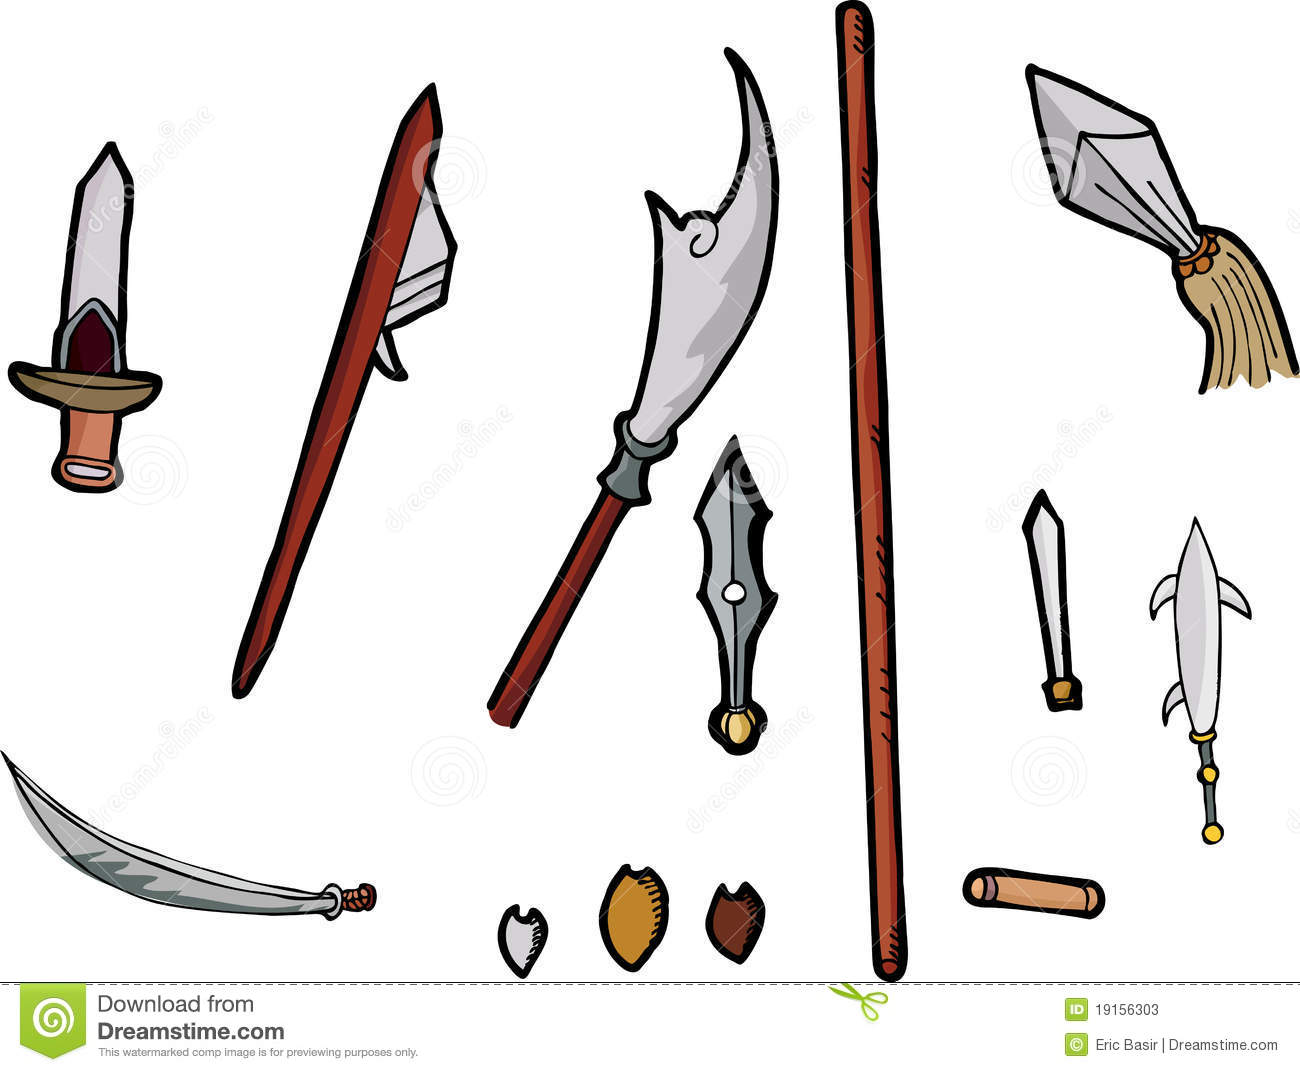 war weapons clipart - photo #29